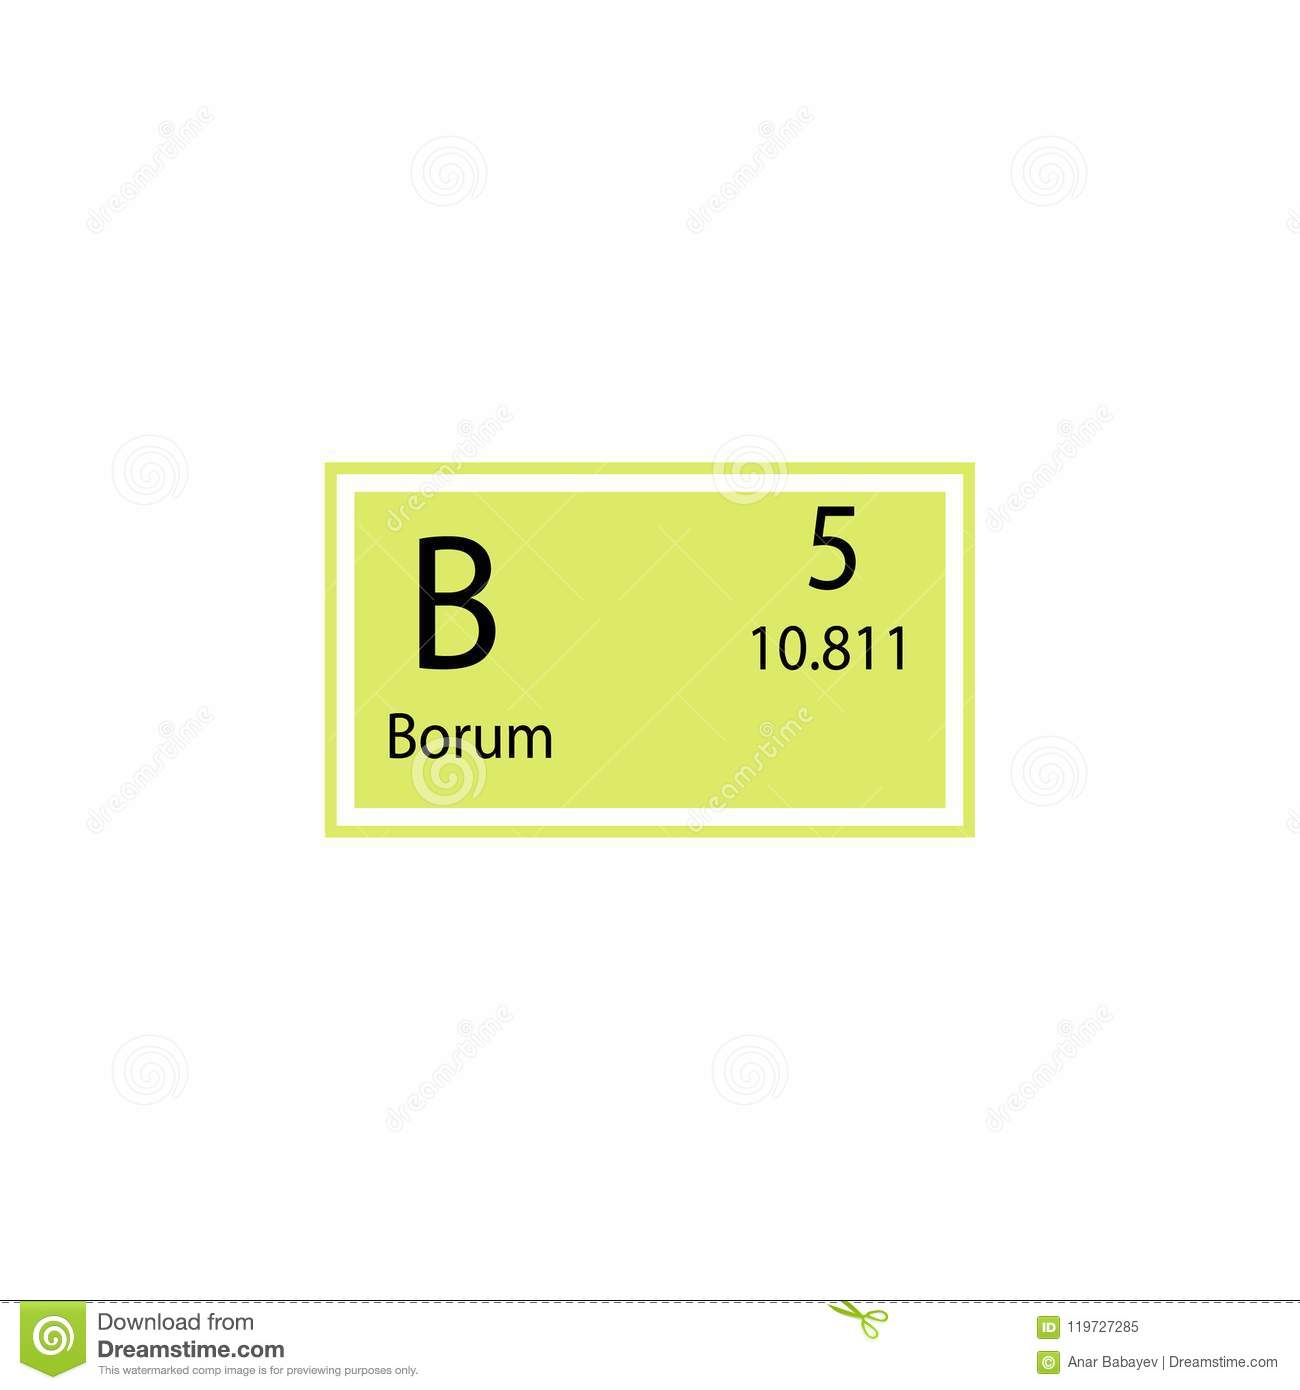 Periodic table element borum icon element of chemical sign icon periodic table element borum icon element of chemical sign icon premium quality graphic design icon signs and symbols collection icon for websites urtaz Gallery